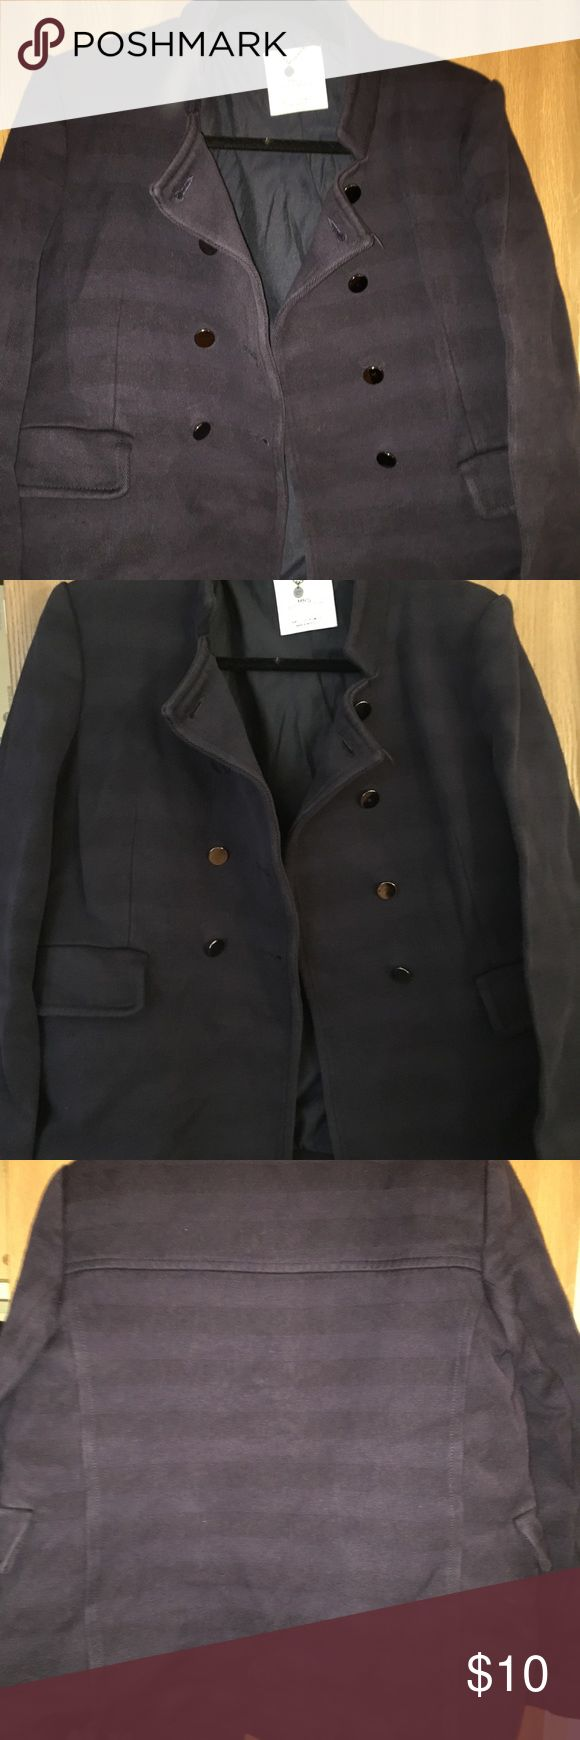 Mango Jacket Used Mango Jackets & Coats Blazers